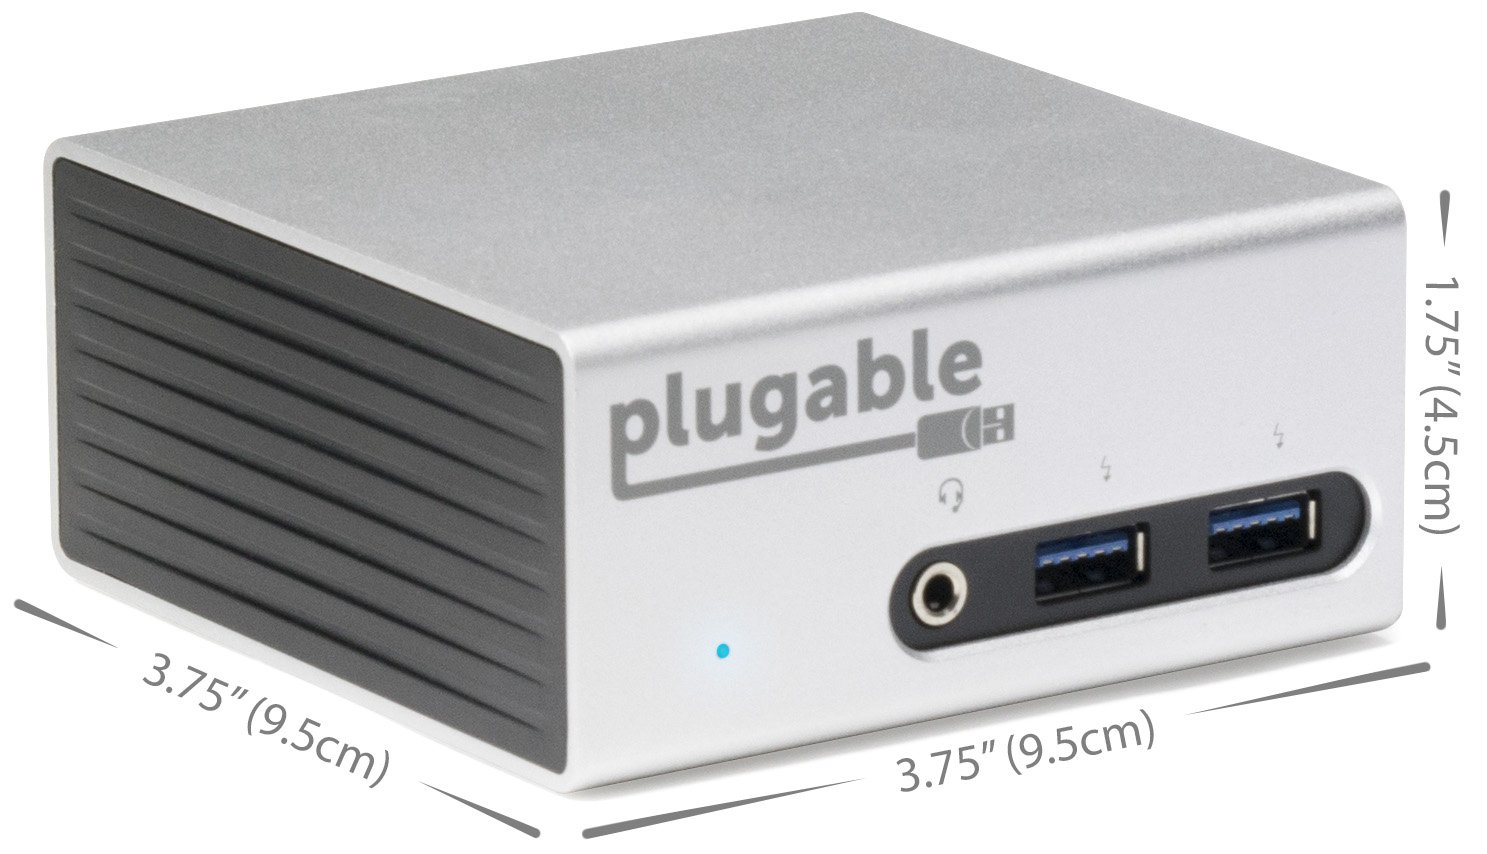 Plugable Universal USB 3.0 Docking Station with Dual Video Outputs and 4K Support for Windows 10, 8.1, 7 (HDMI & DVI/VGA, Gigabit Ethernet, Audio, 4 USB 3.0 Ports, VESA mount Aluminum Mini) by Plugable (Image #4)